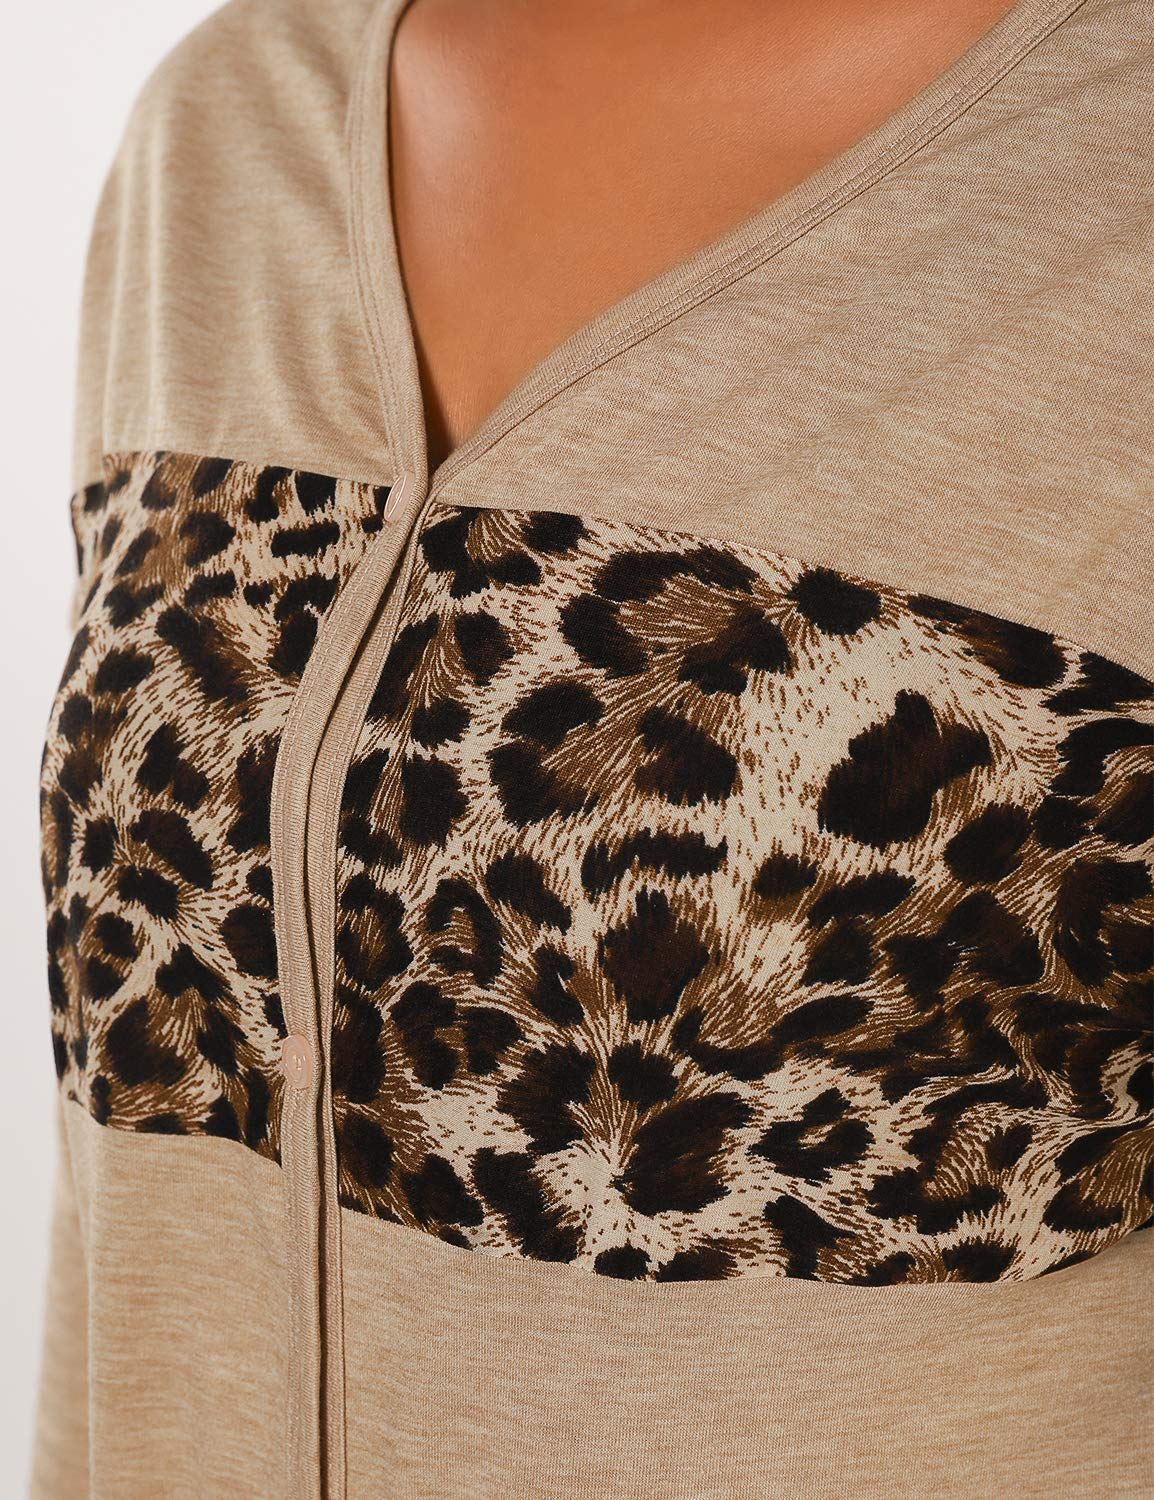 Blooming Jelly Button Down Tie Shirt Long Sleeve V Neck Blouse Casual Leopard Top (Large, Khaki)